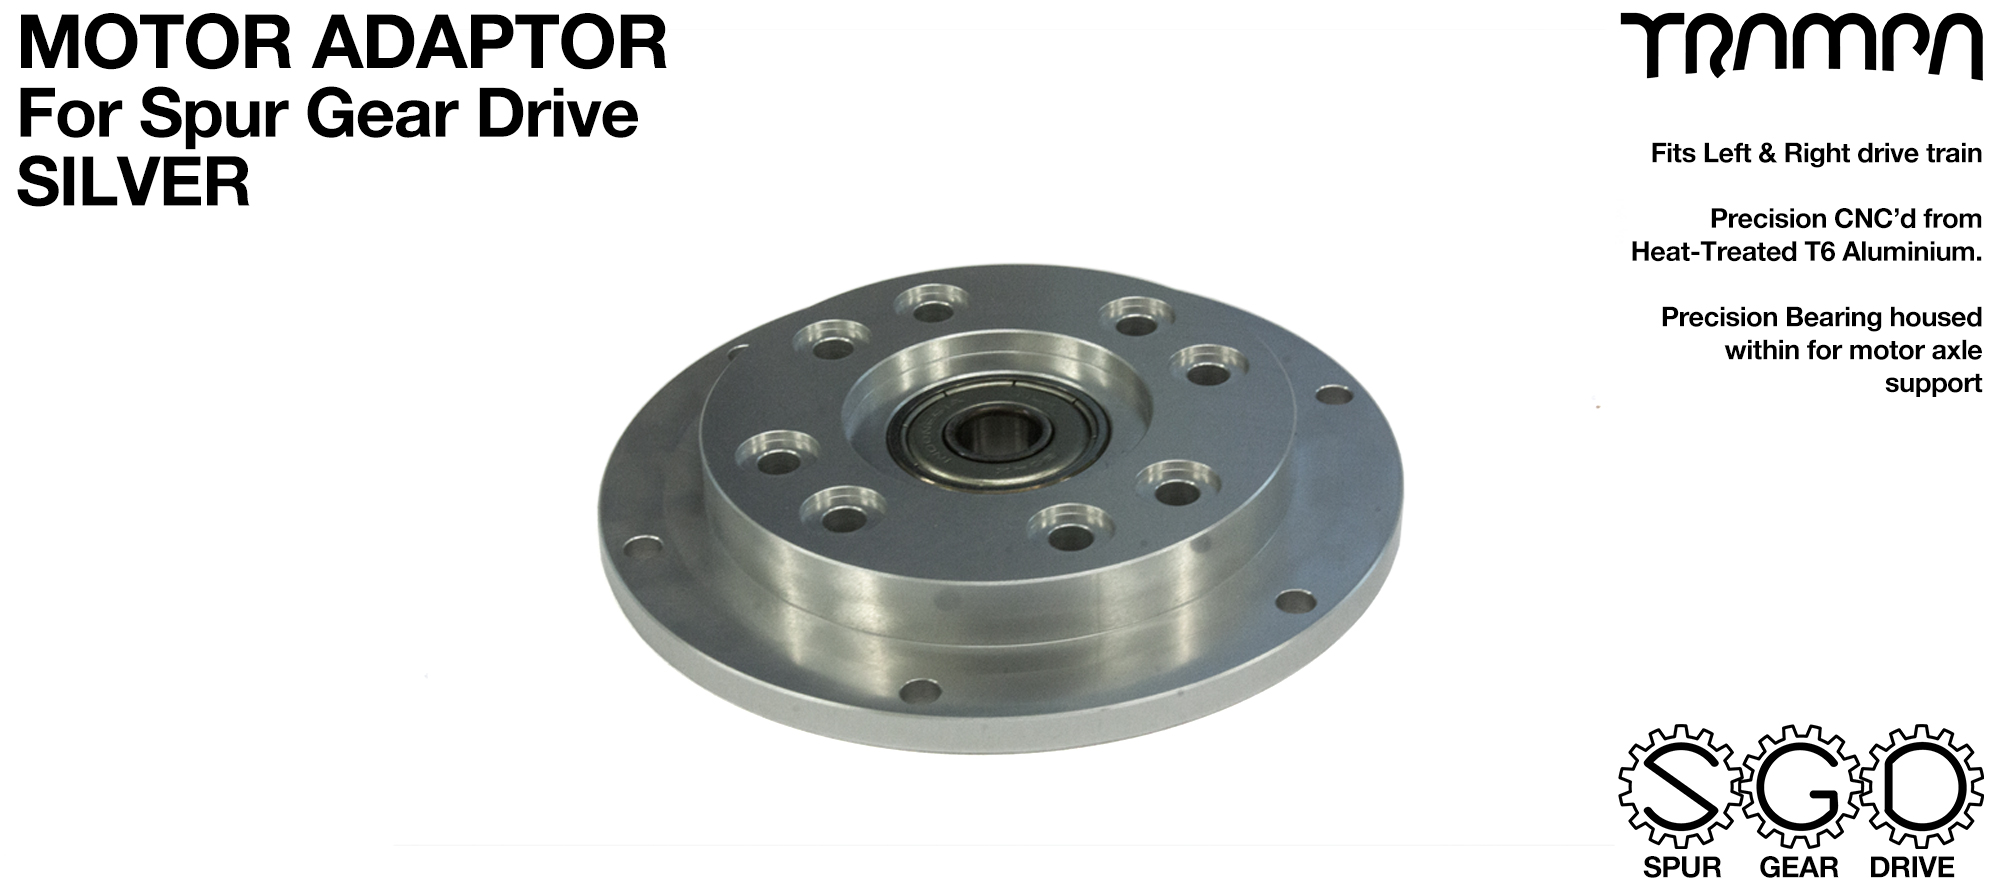 MkII Spur Gear Drive Motor mount Adaptor SILVER